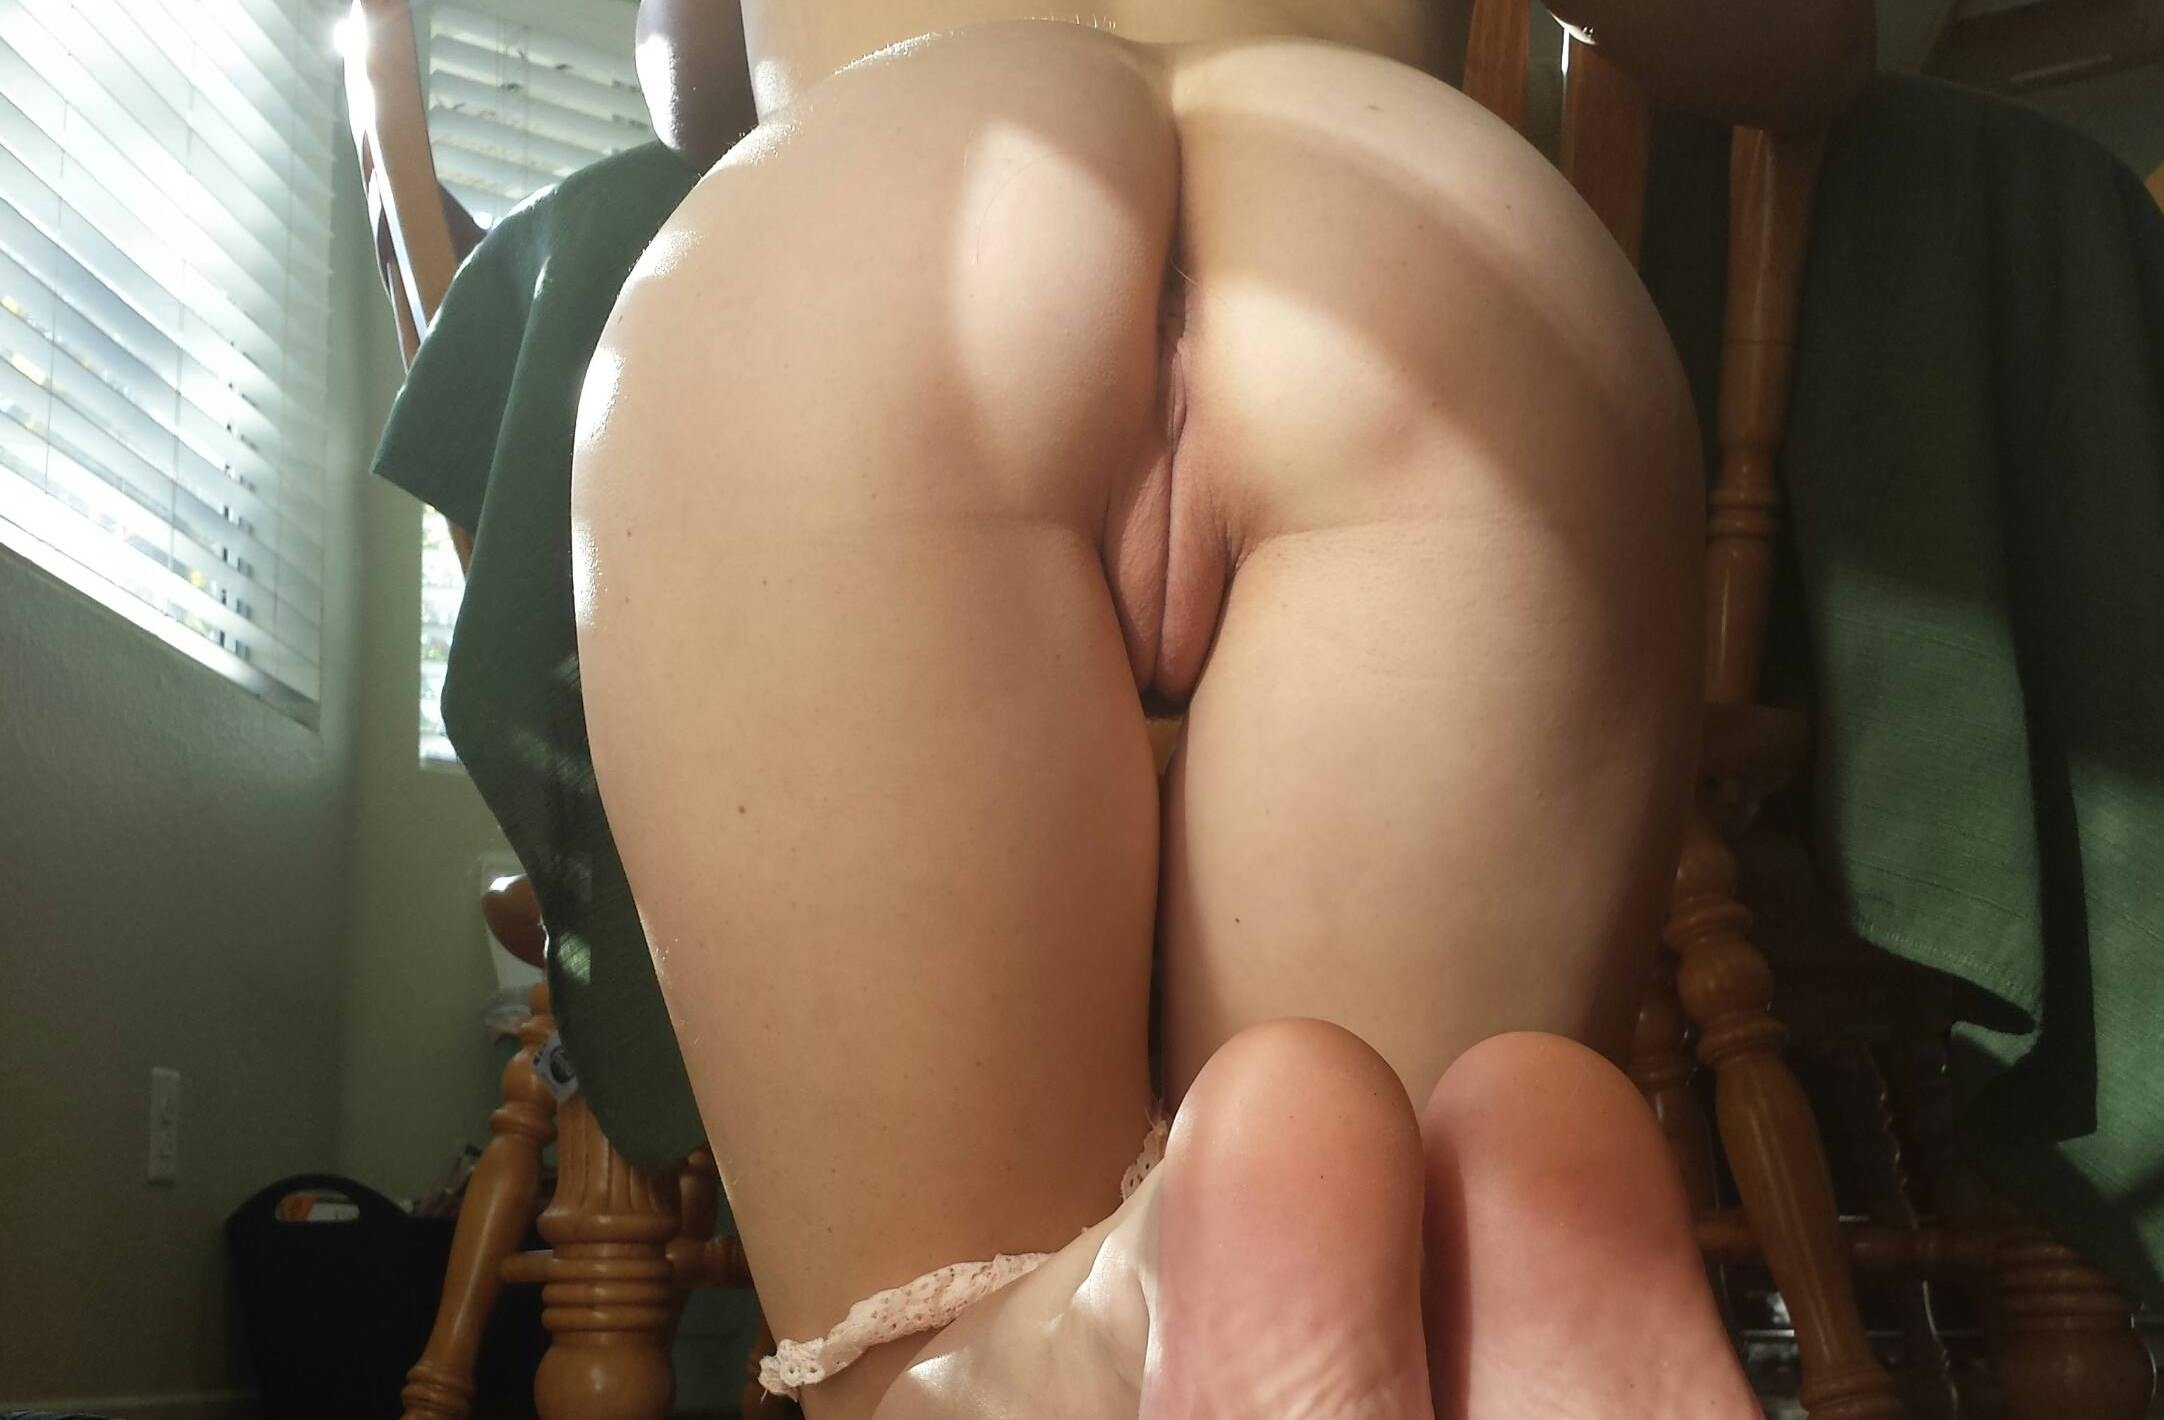 Ass And Pussy Selfie